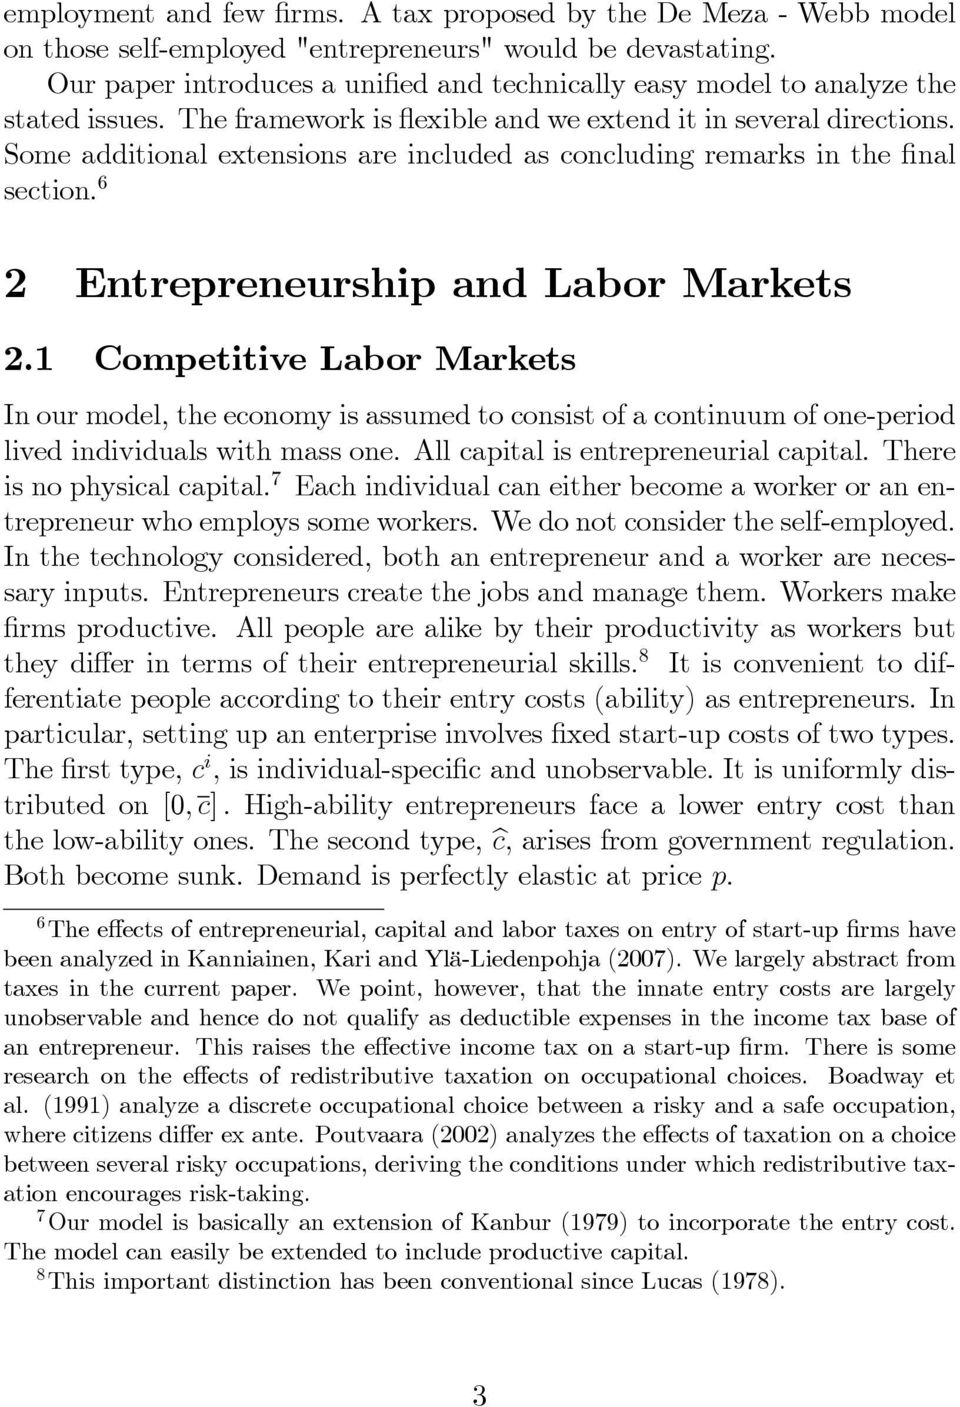 Some additional extensions are included as concluding remarks in the final section. 6 2 Entrepreneurship and Labor Markets 2.